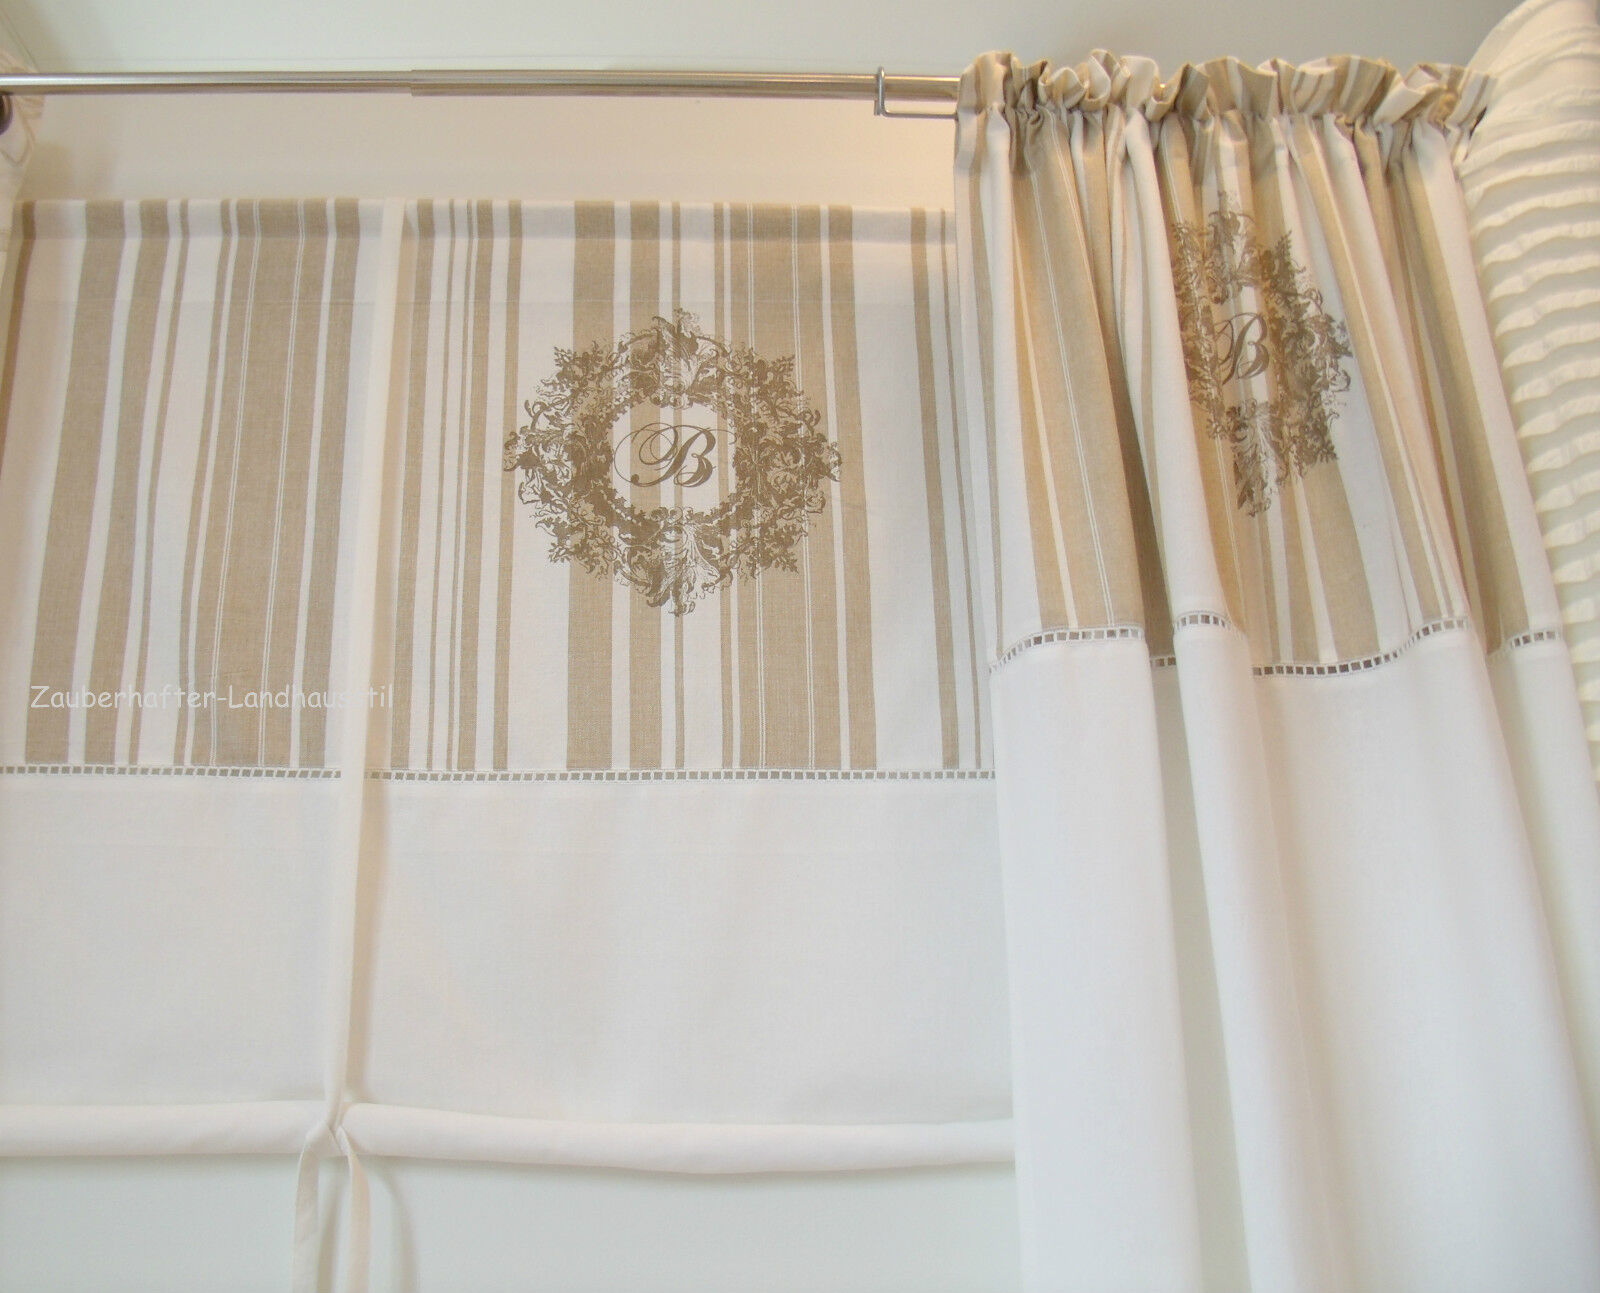 beatrice deko raff gardine 100x100 shabby vintage curtain. Black Bedroom Furniture Sets. Home Design Ideas